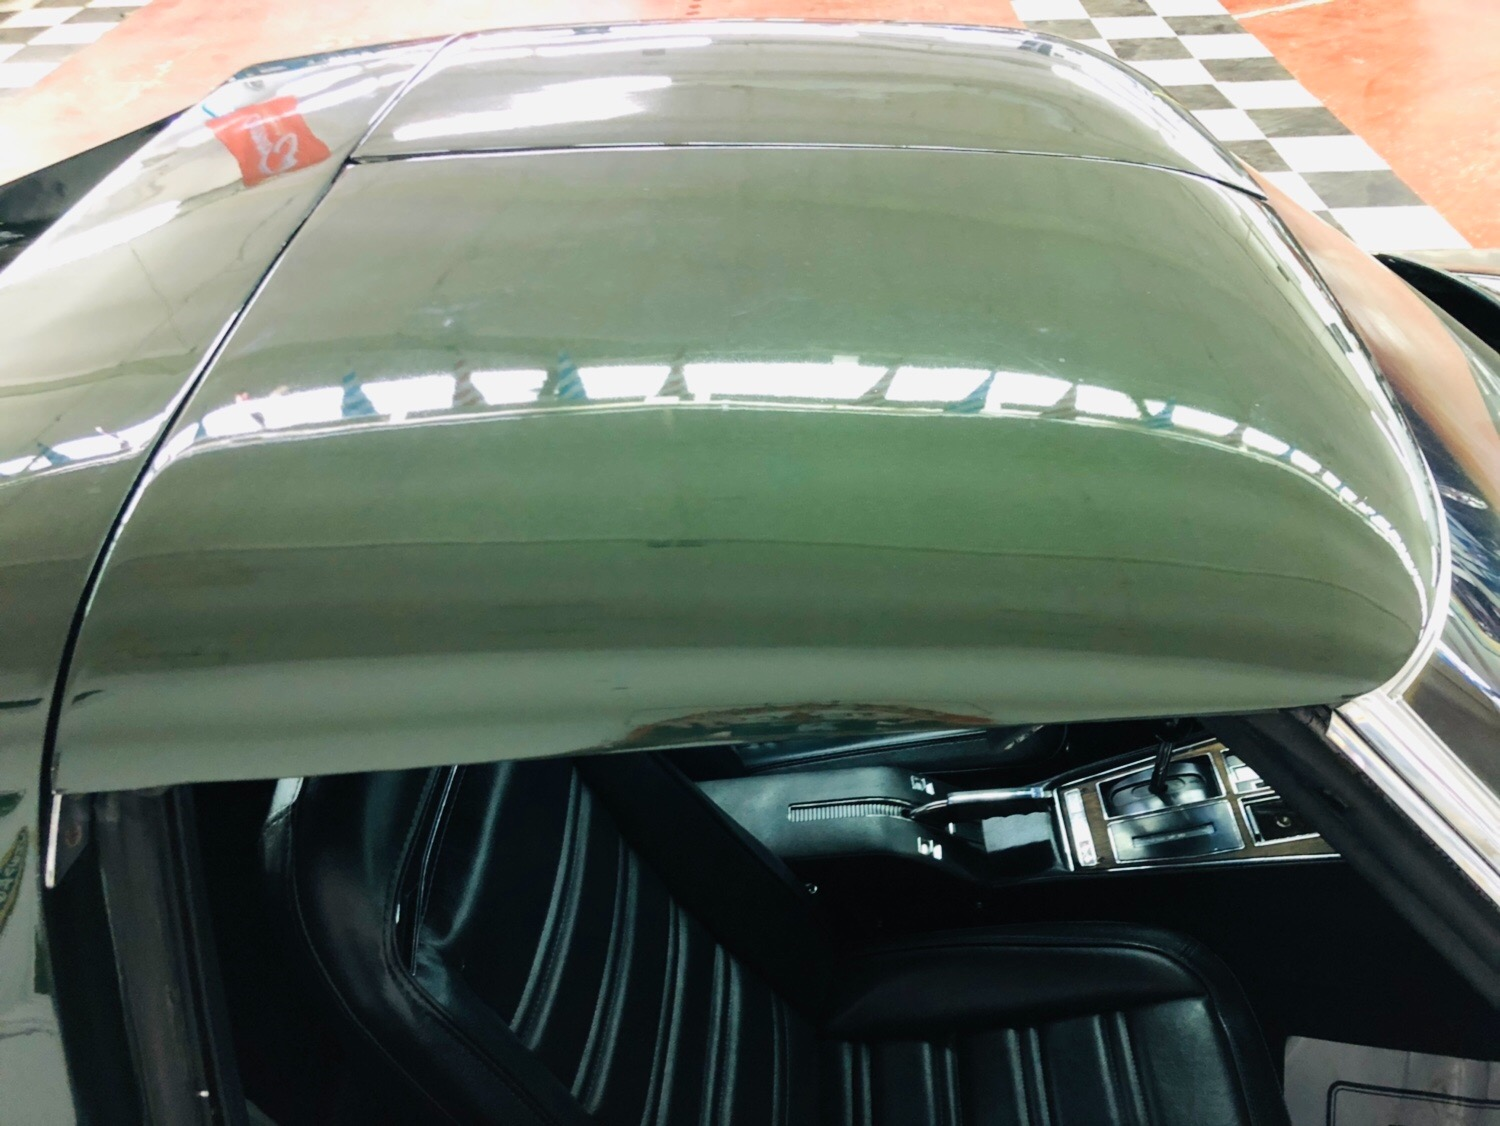 Used 1974 Chevrolet Corvette -T TOPS-NICE PAINT-GREAT PRICE- | Mundelein, IL